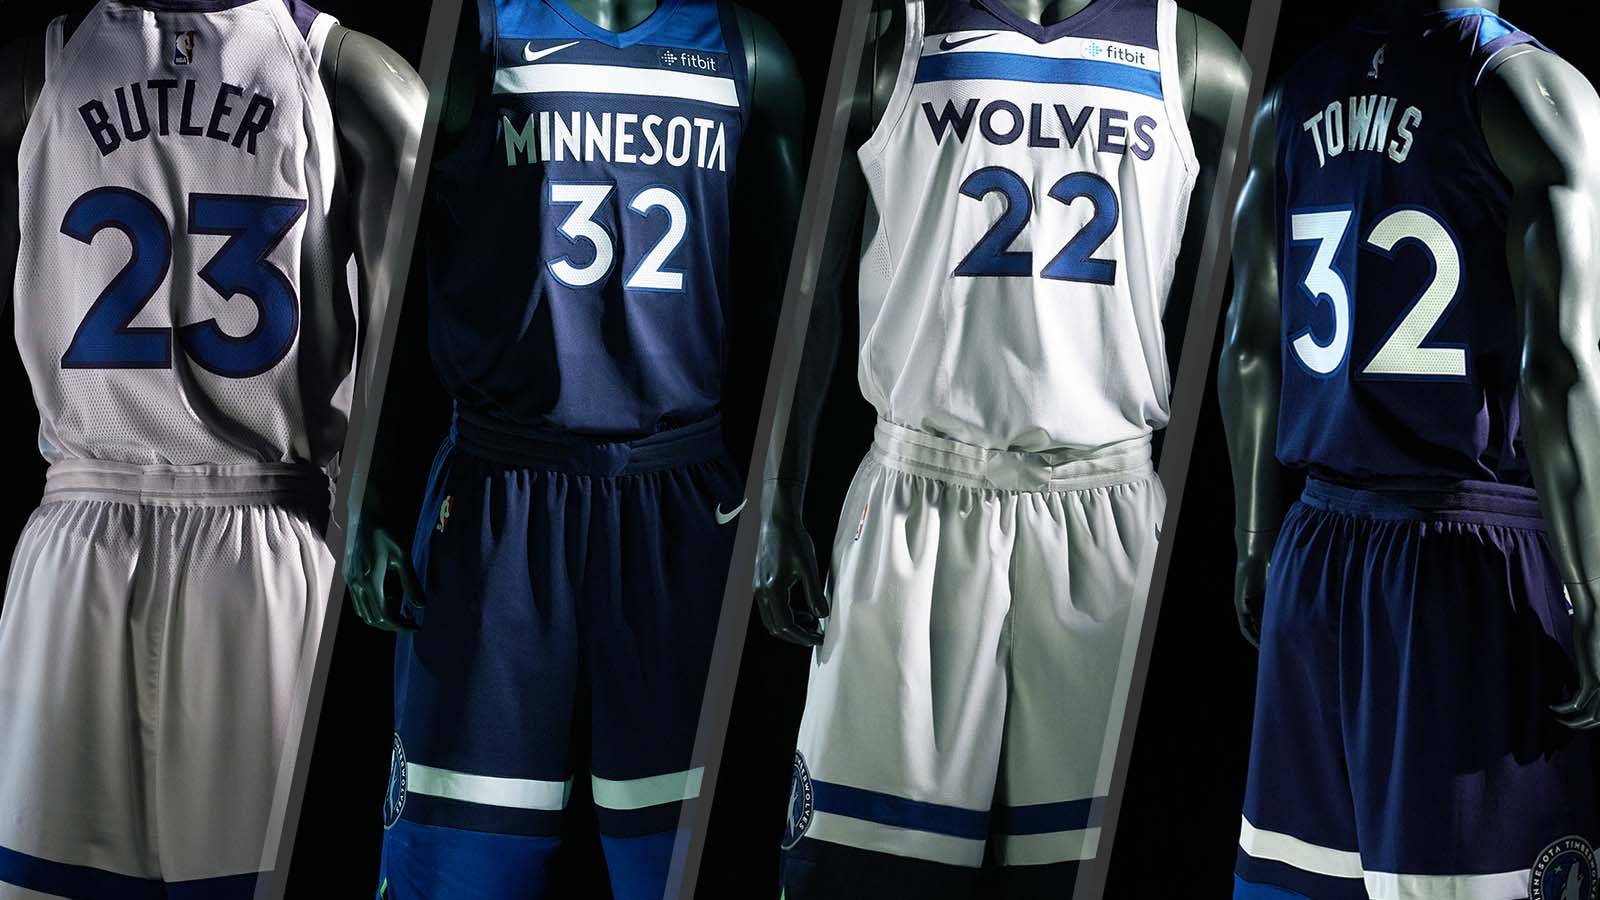 buy online 6a023 a6fa2 An in-depth look at the new Timberwolves jerseys | FOX Sports